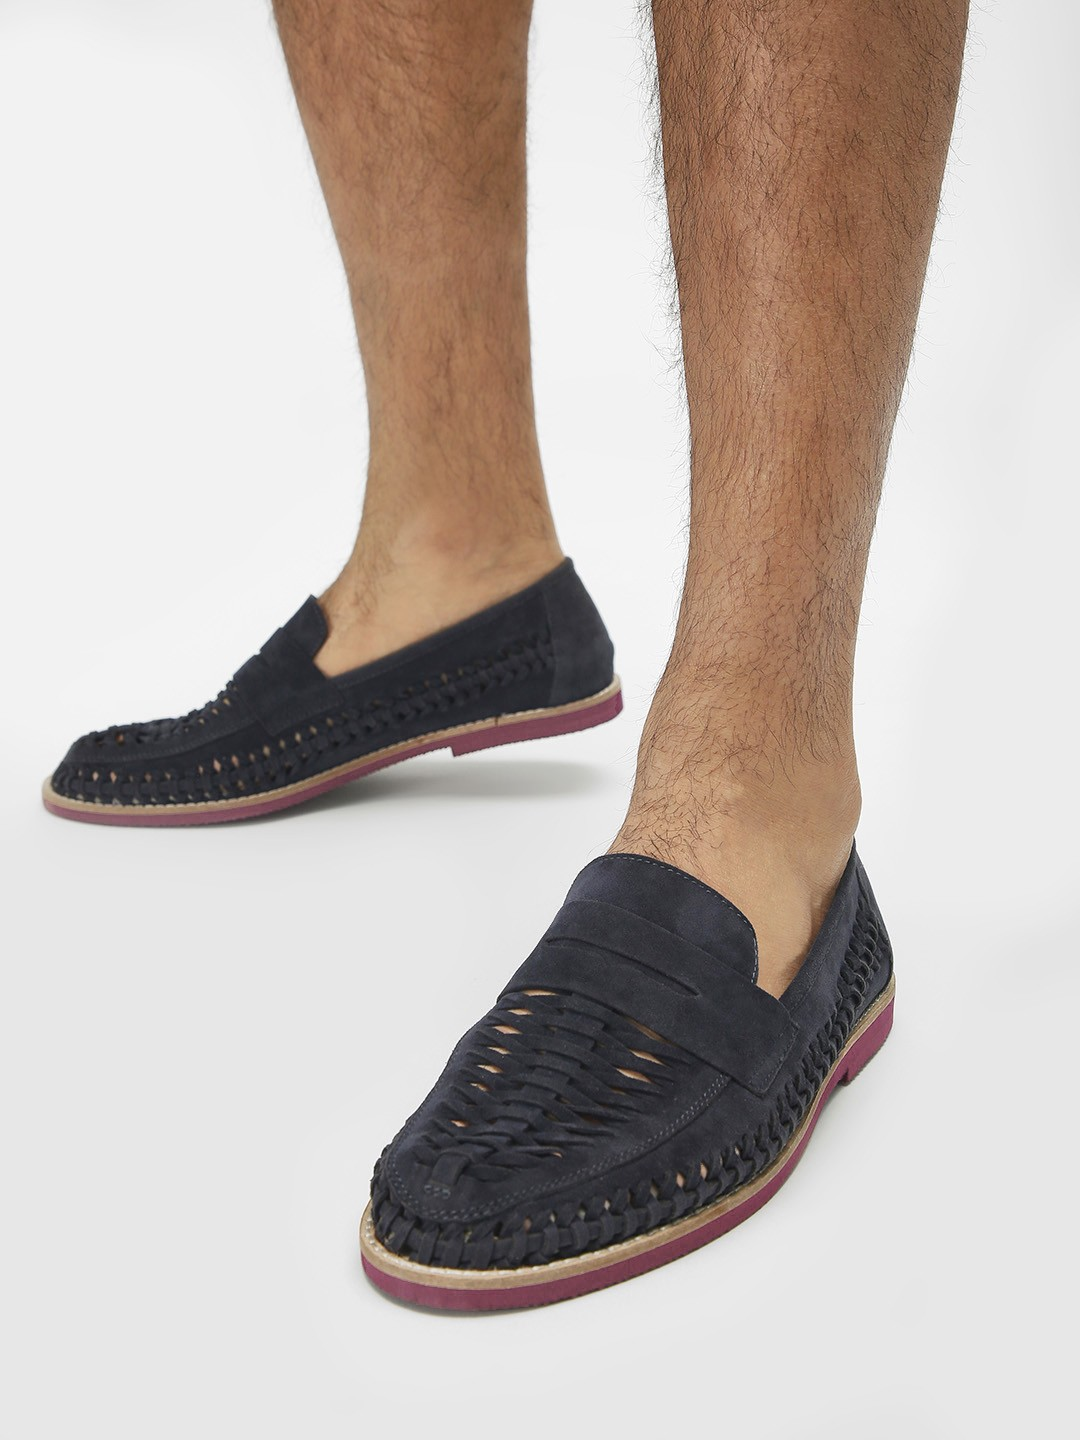 Bolt Of The Good Stuff Blue Suede Weave Penny Loafers 1